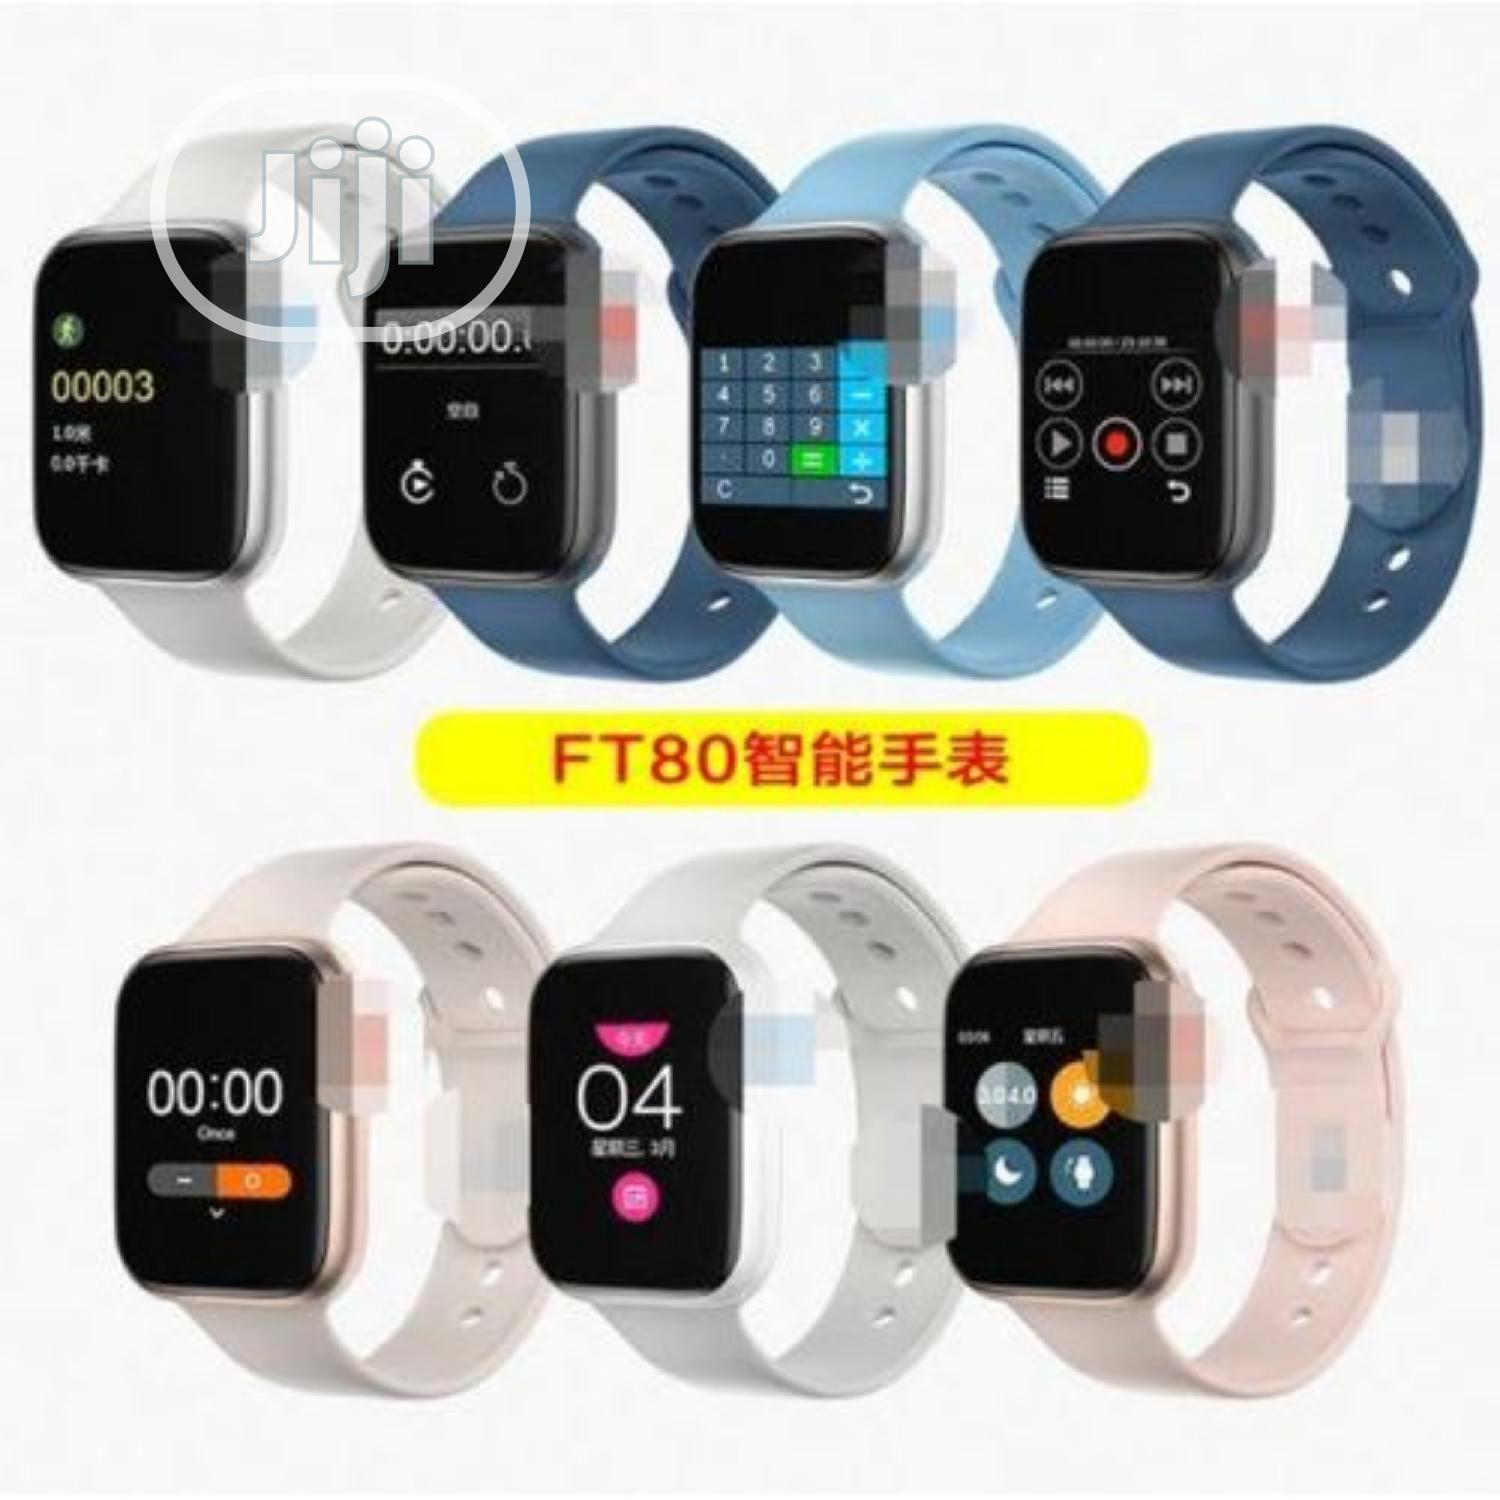 Ft80 Smart Watch and Bracelet With GPS and Sensor